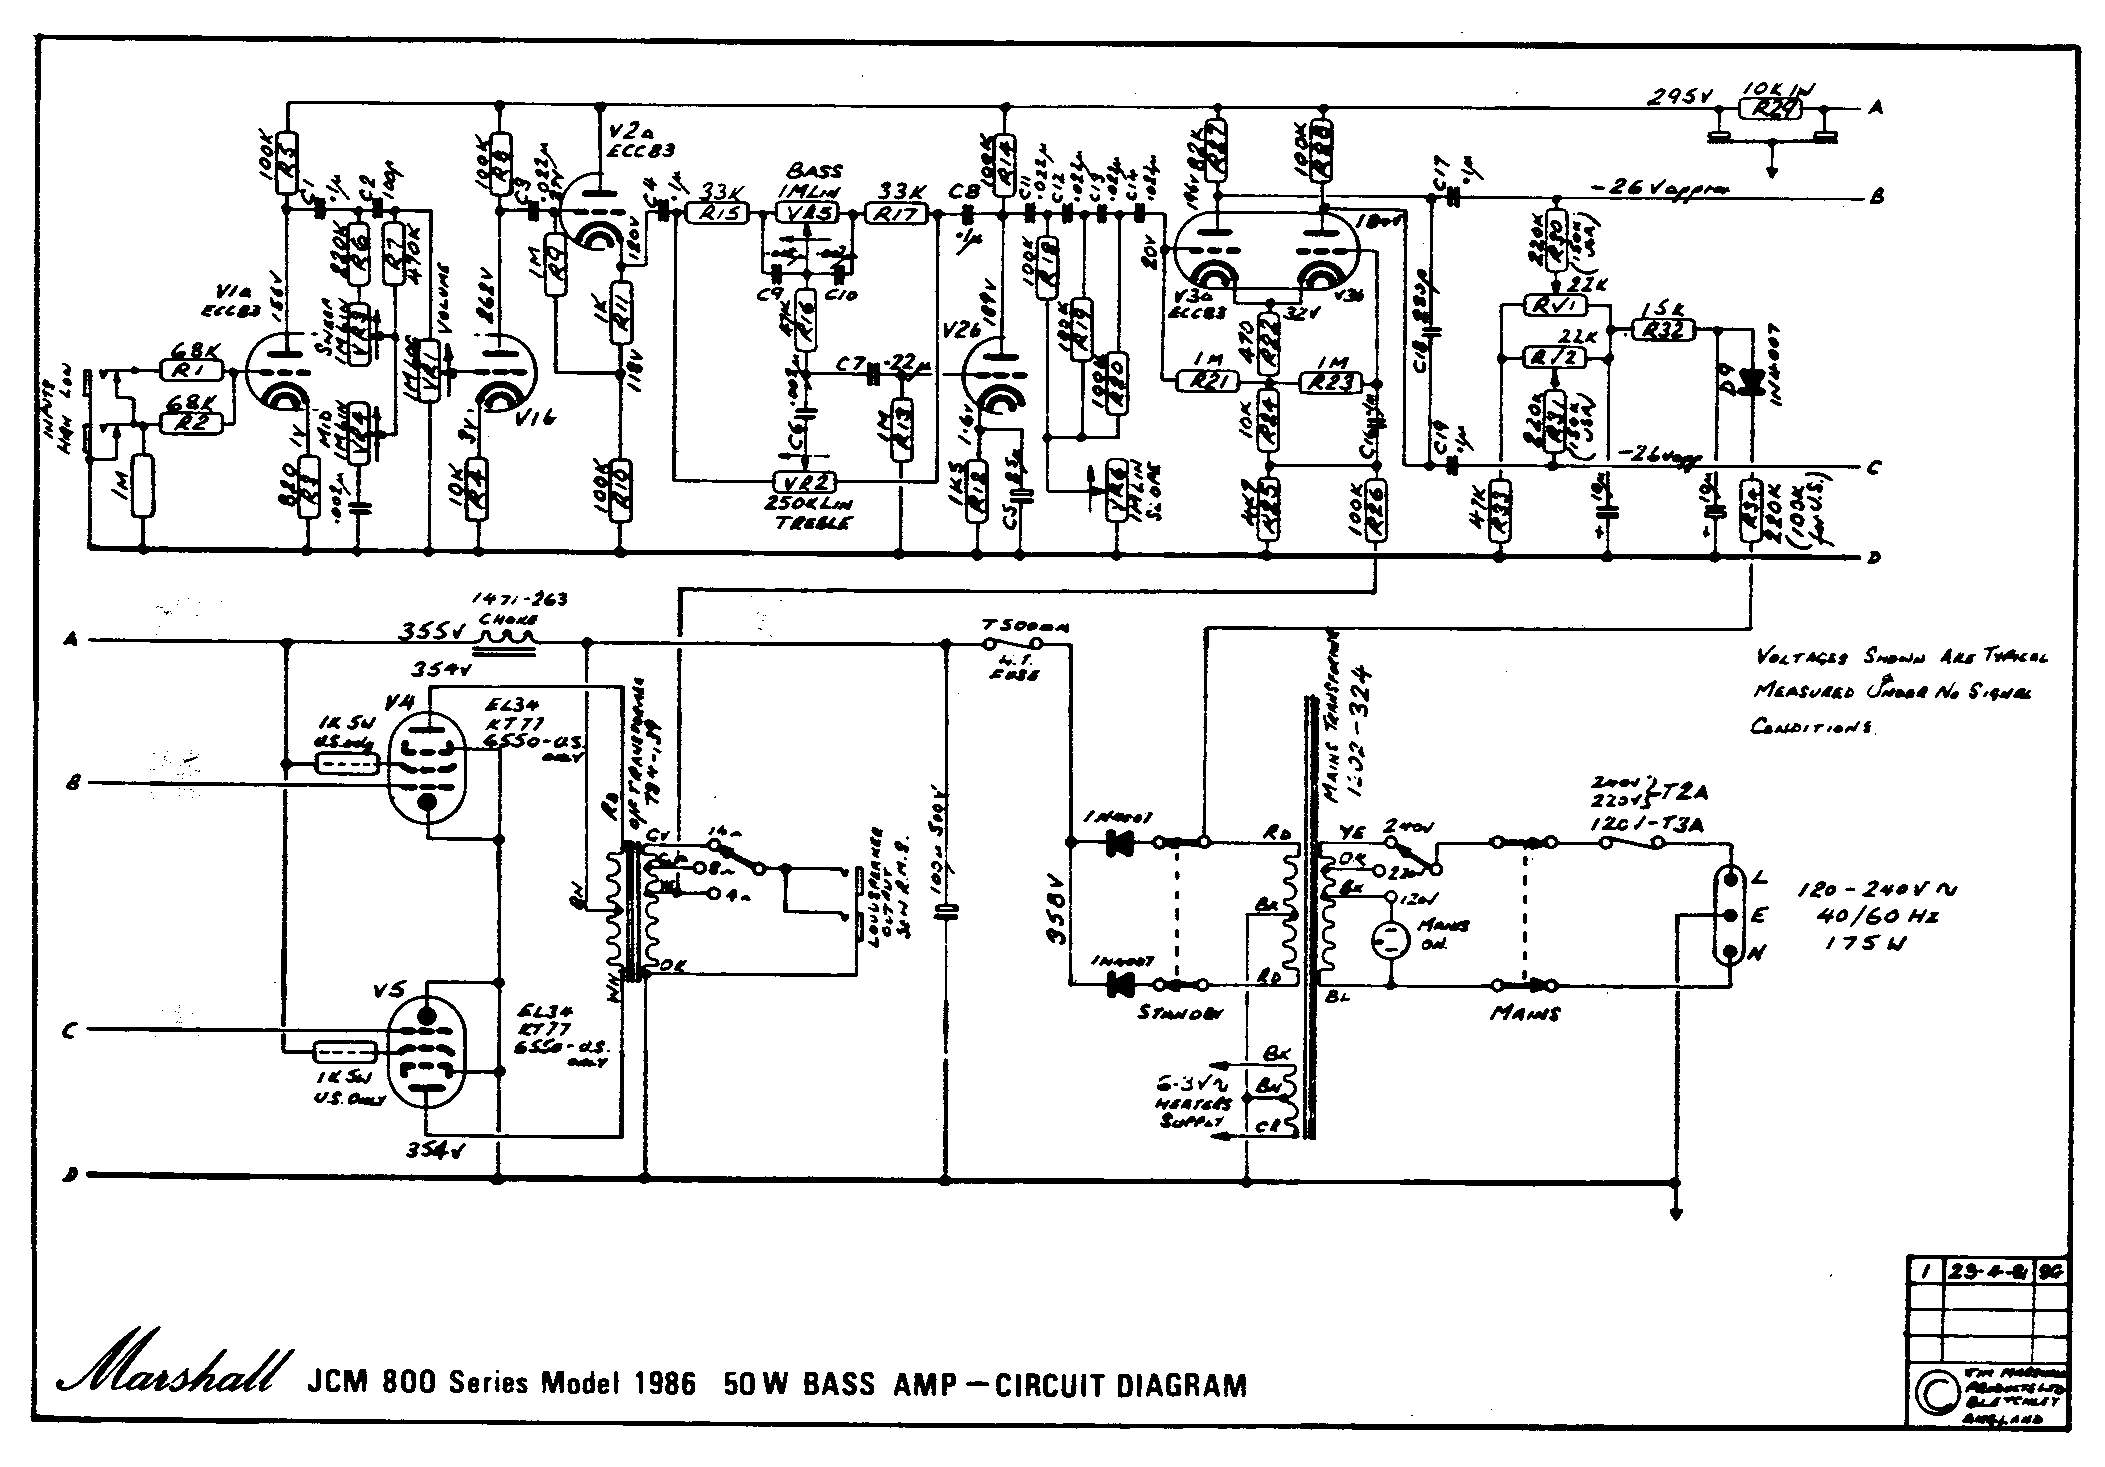 Jcm Schematic on slo-100 schematic, tube map, 5e3 schematic, transformer schematic, 3pdt schematic, 1987x schematic, bass tube preamp schematic, irig schematic, block diagram, marshall schematic, functional flow block diagram, jcm 900 schematic, overdrive schematic, piping and instrumentation diagram, guitar schematic, bassman schematic, peavey schematic, one-line diagram, soldano schematic, amp schematic, jtm45 schematic, fender schematic, zvex sho schematic, circuit diagram, technical drawing, dsl schematic, ac30 schematic,